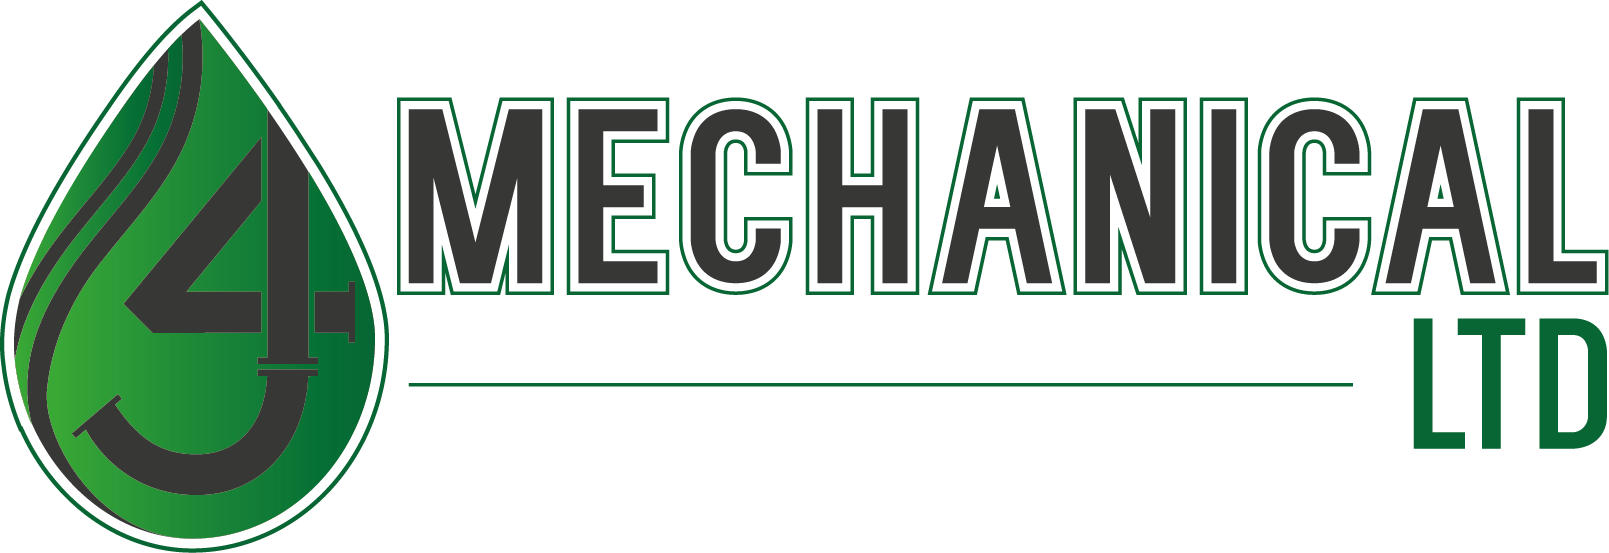 MECHANICAL LTD Logo iron on transfer